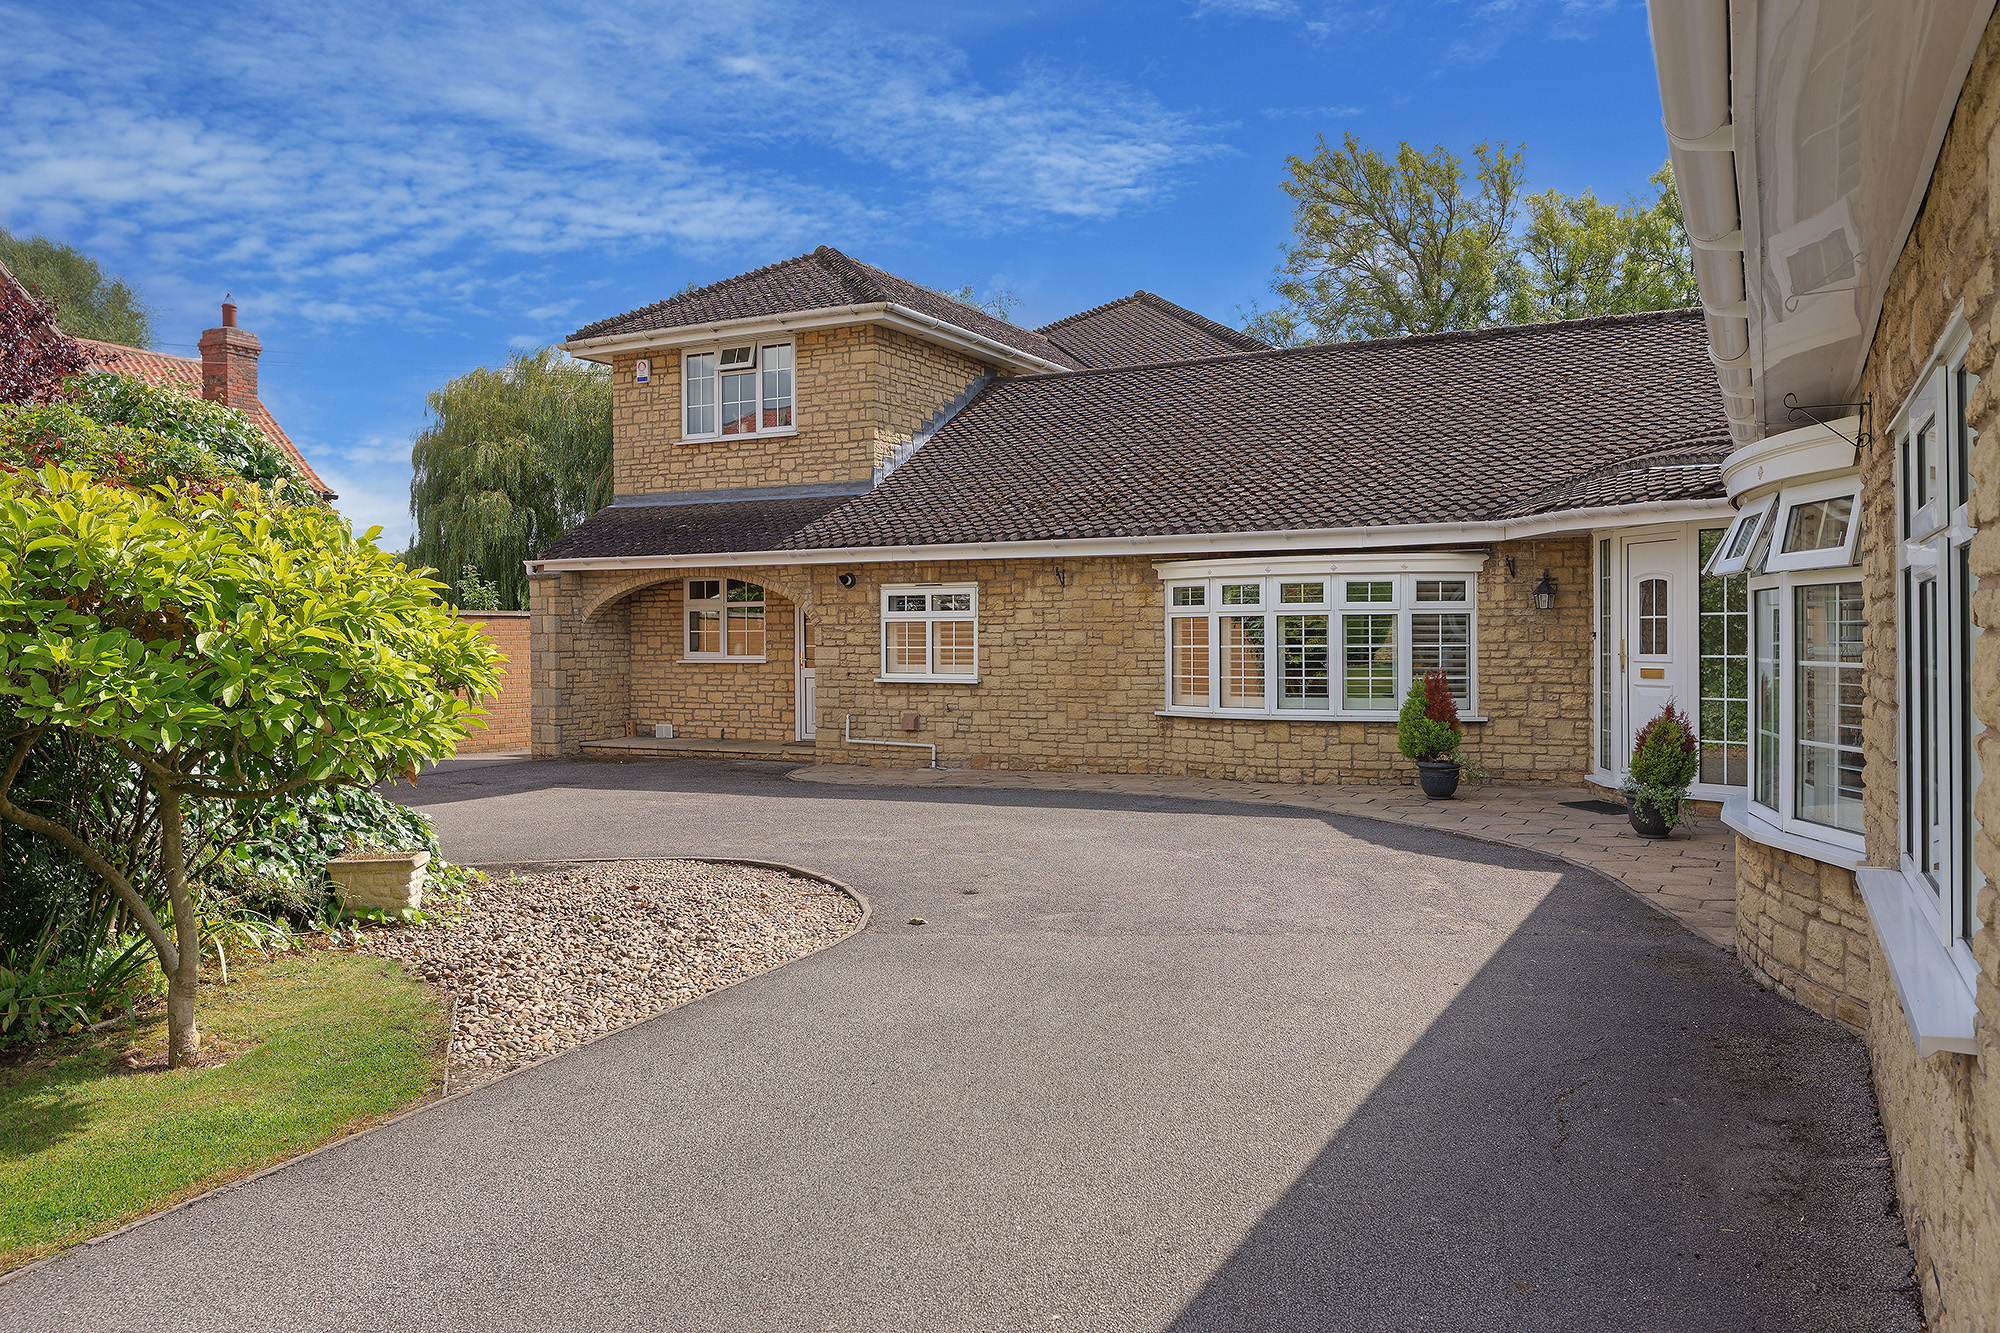 Holiday Homes With A Pool In Near Lincolnshire Wolds East Midlands Cottage With Swimming Pool